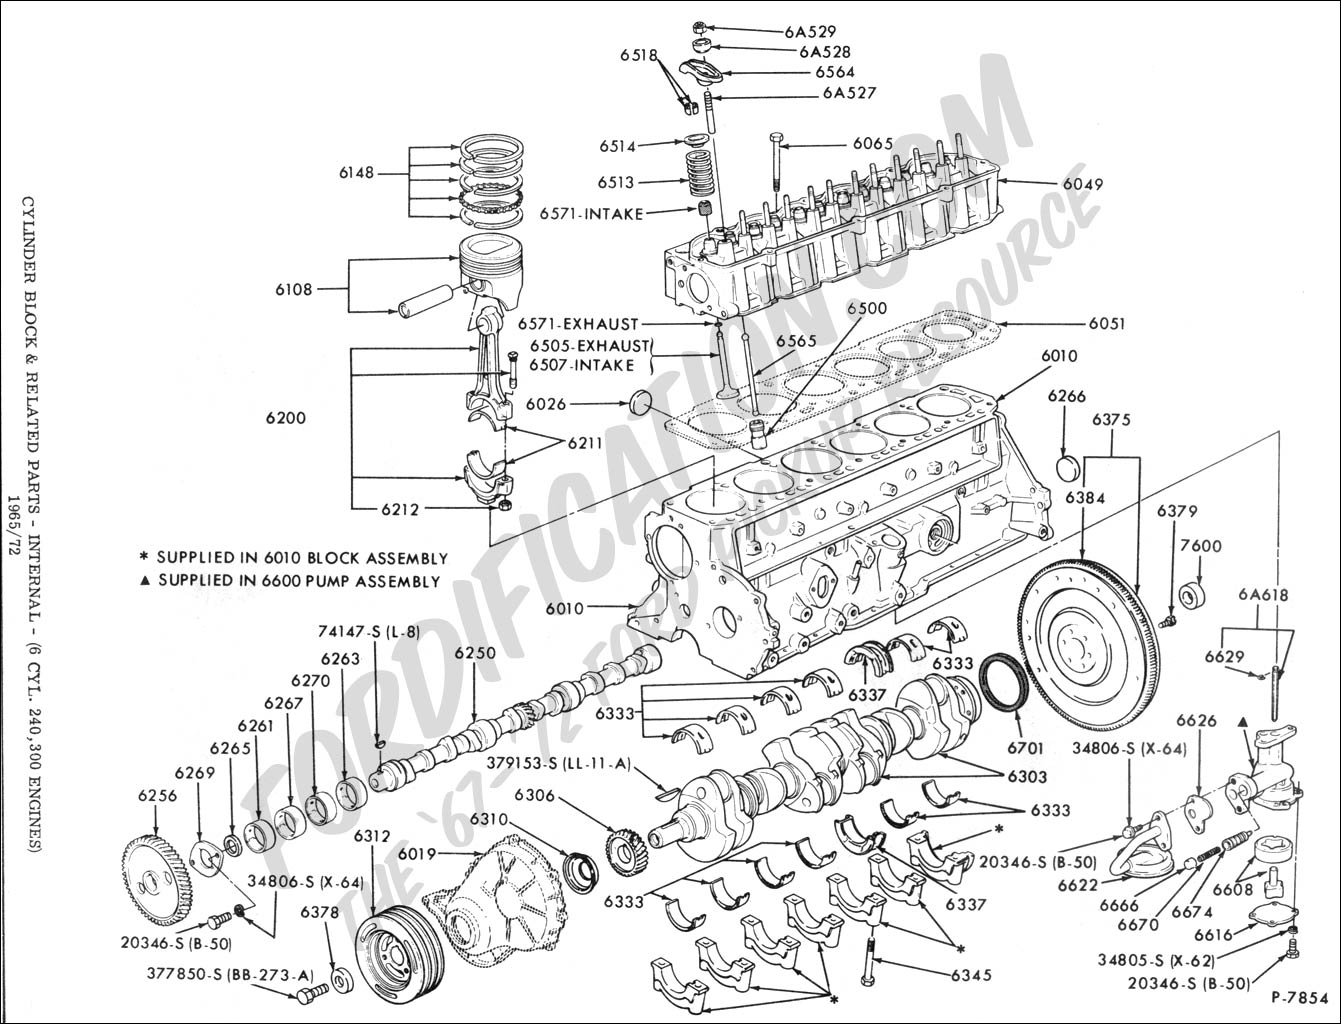 1966 mustang 289 wiring diagram  1966  free engine image for user manual download